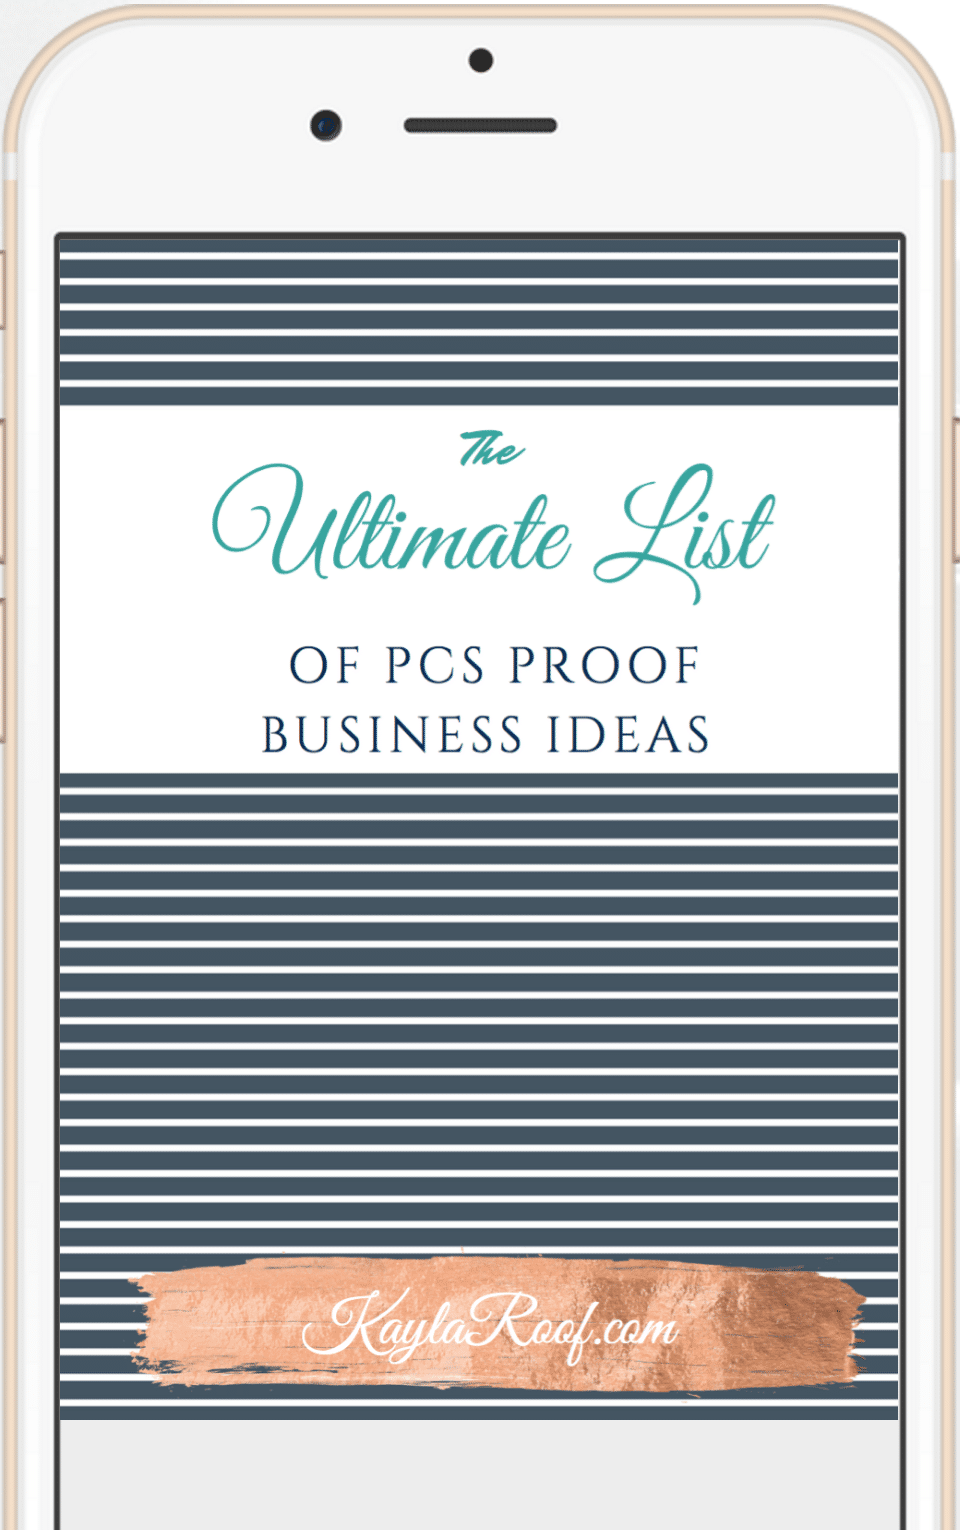 The Ultimate List of PCS Proof Business Ideas